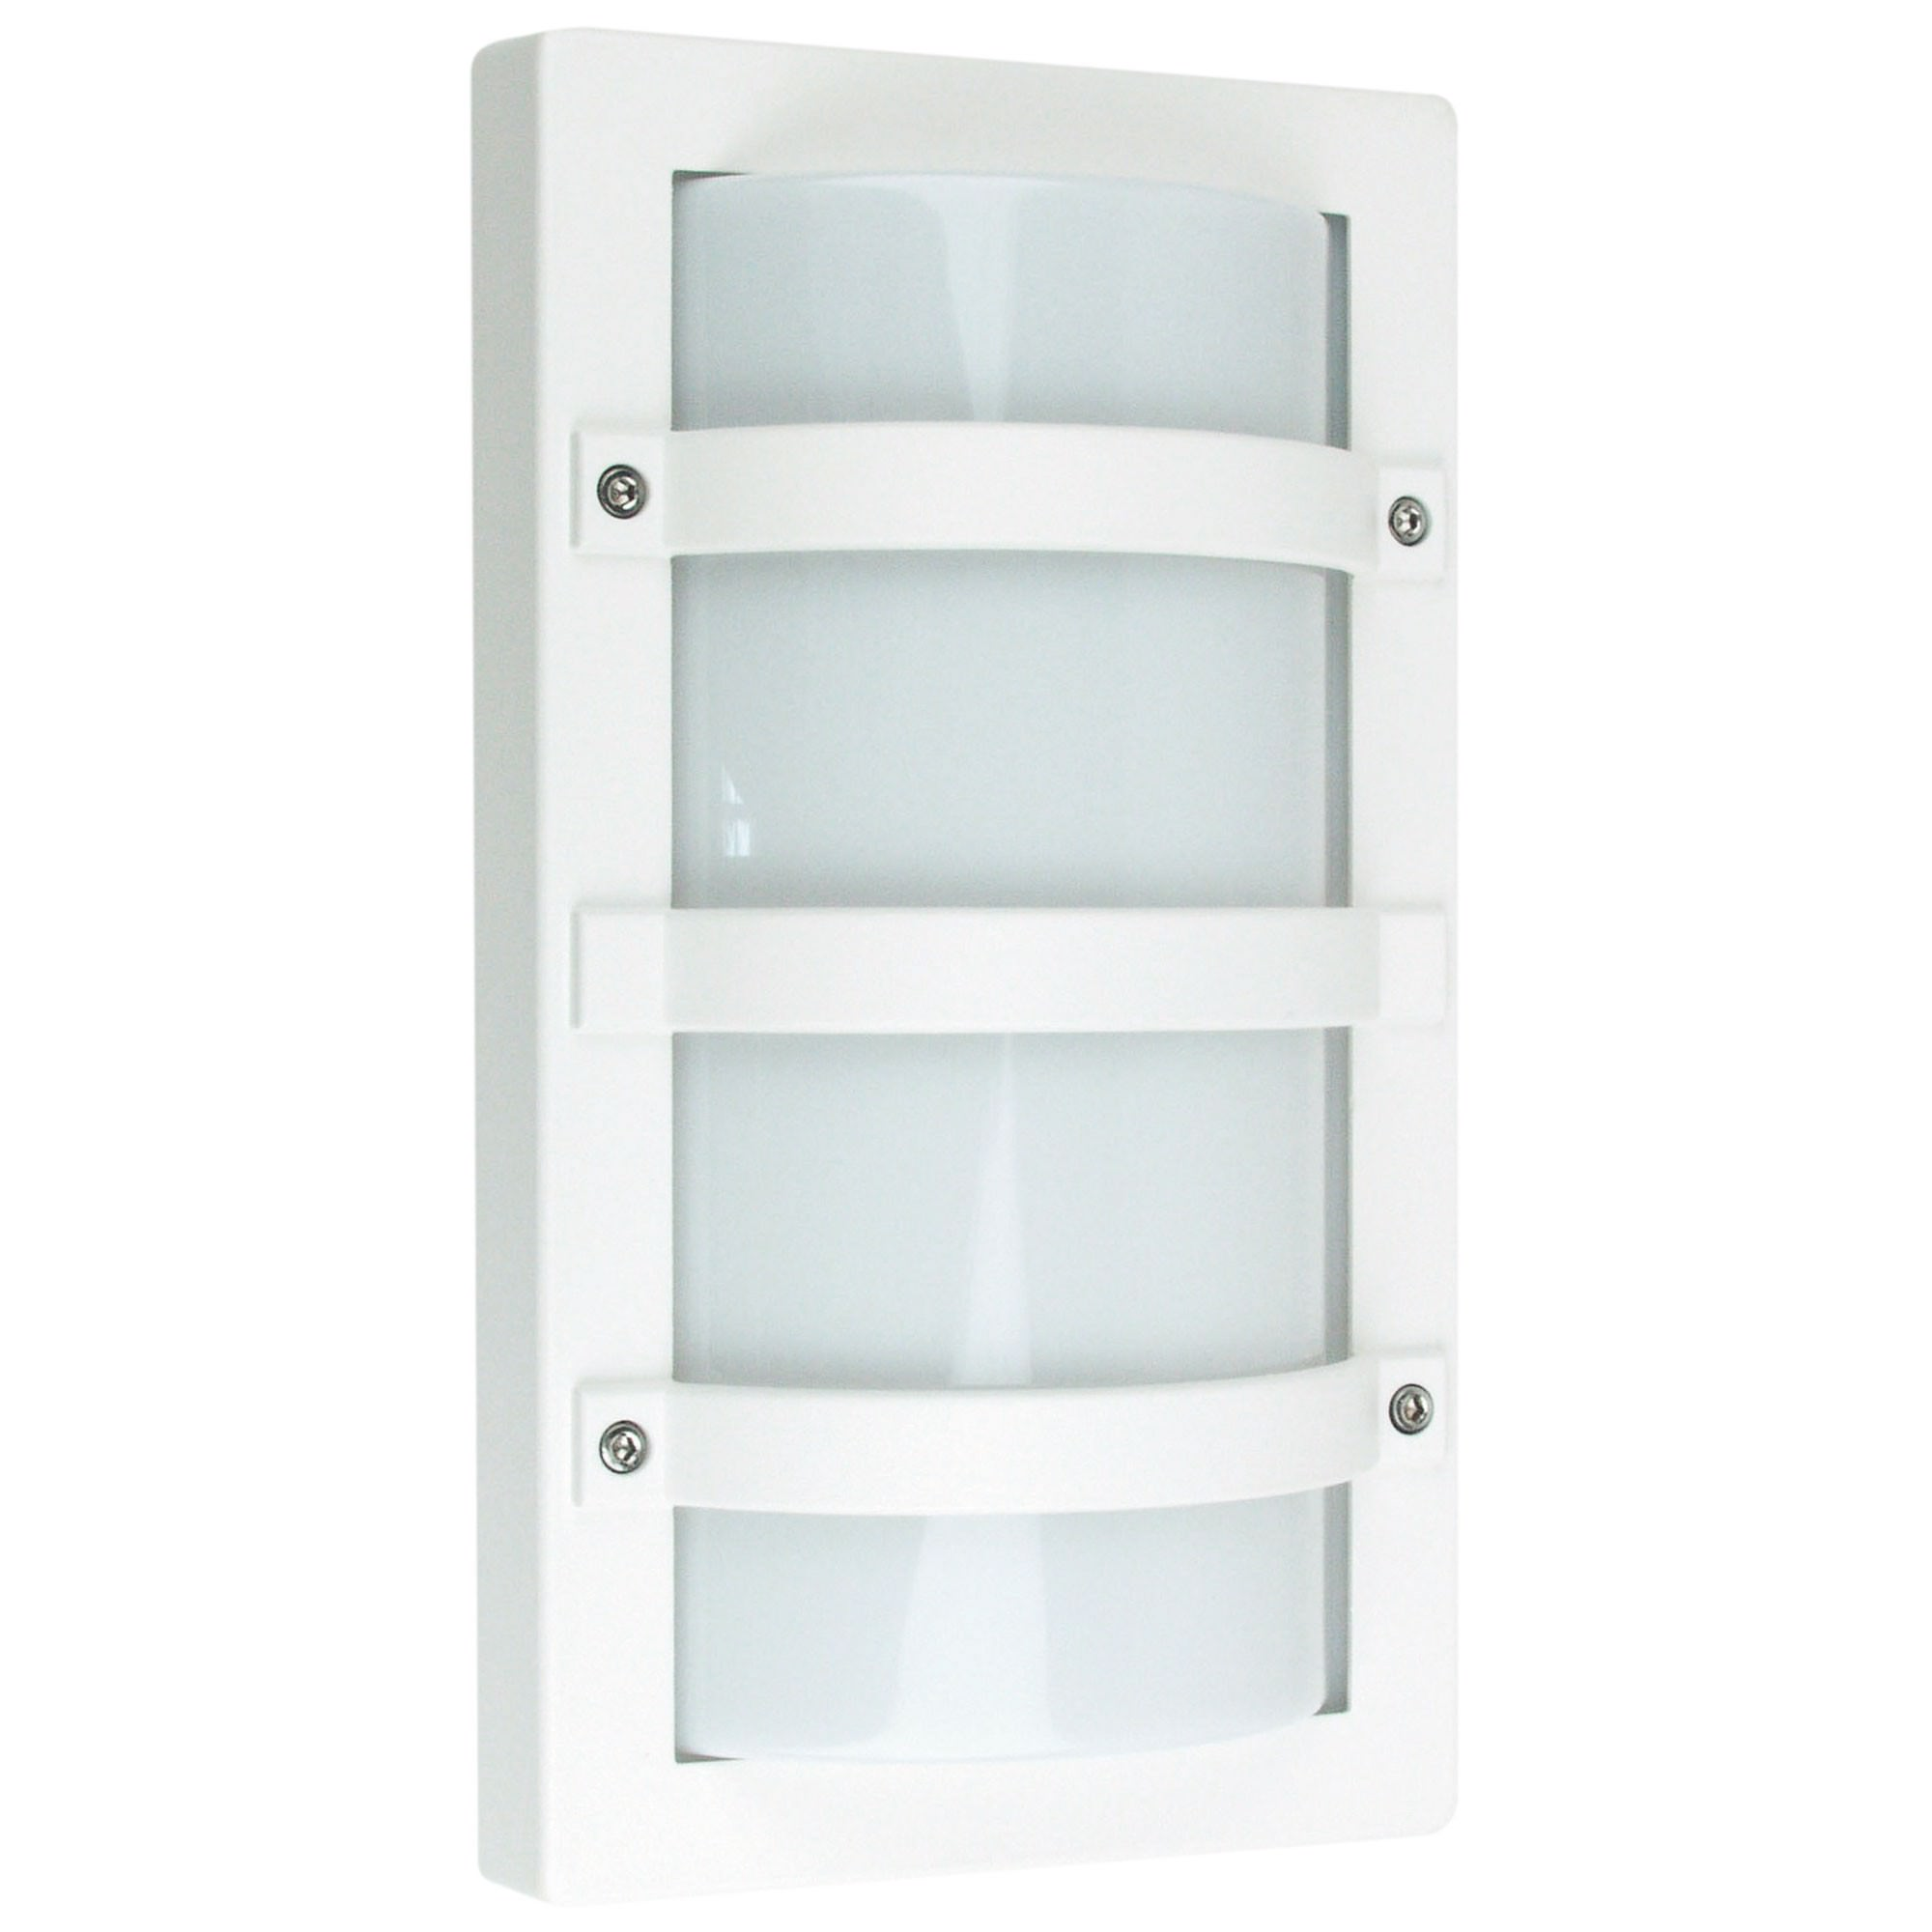 Trio IP65 Commercial Grade Exterior Bunker Wall Light, Large, White